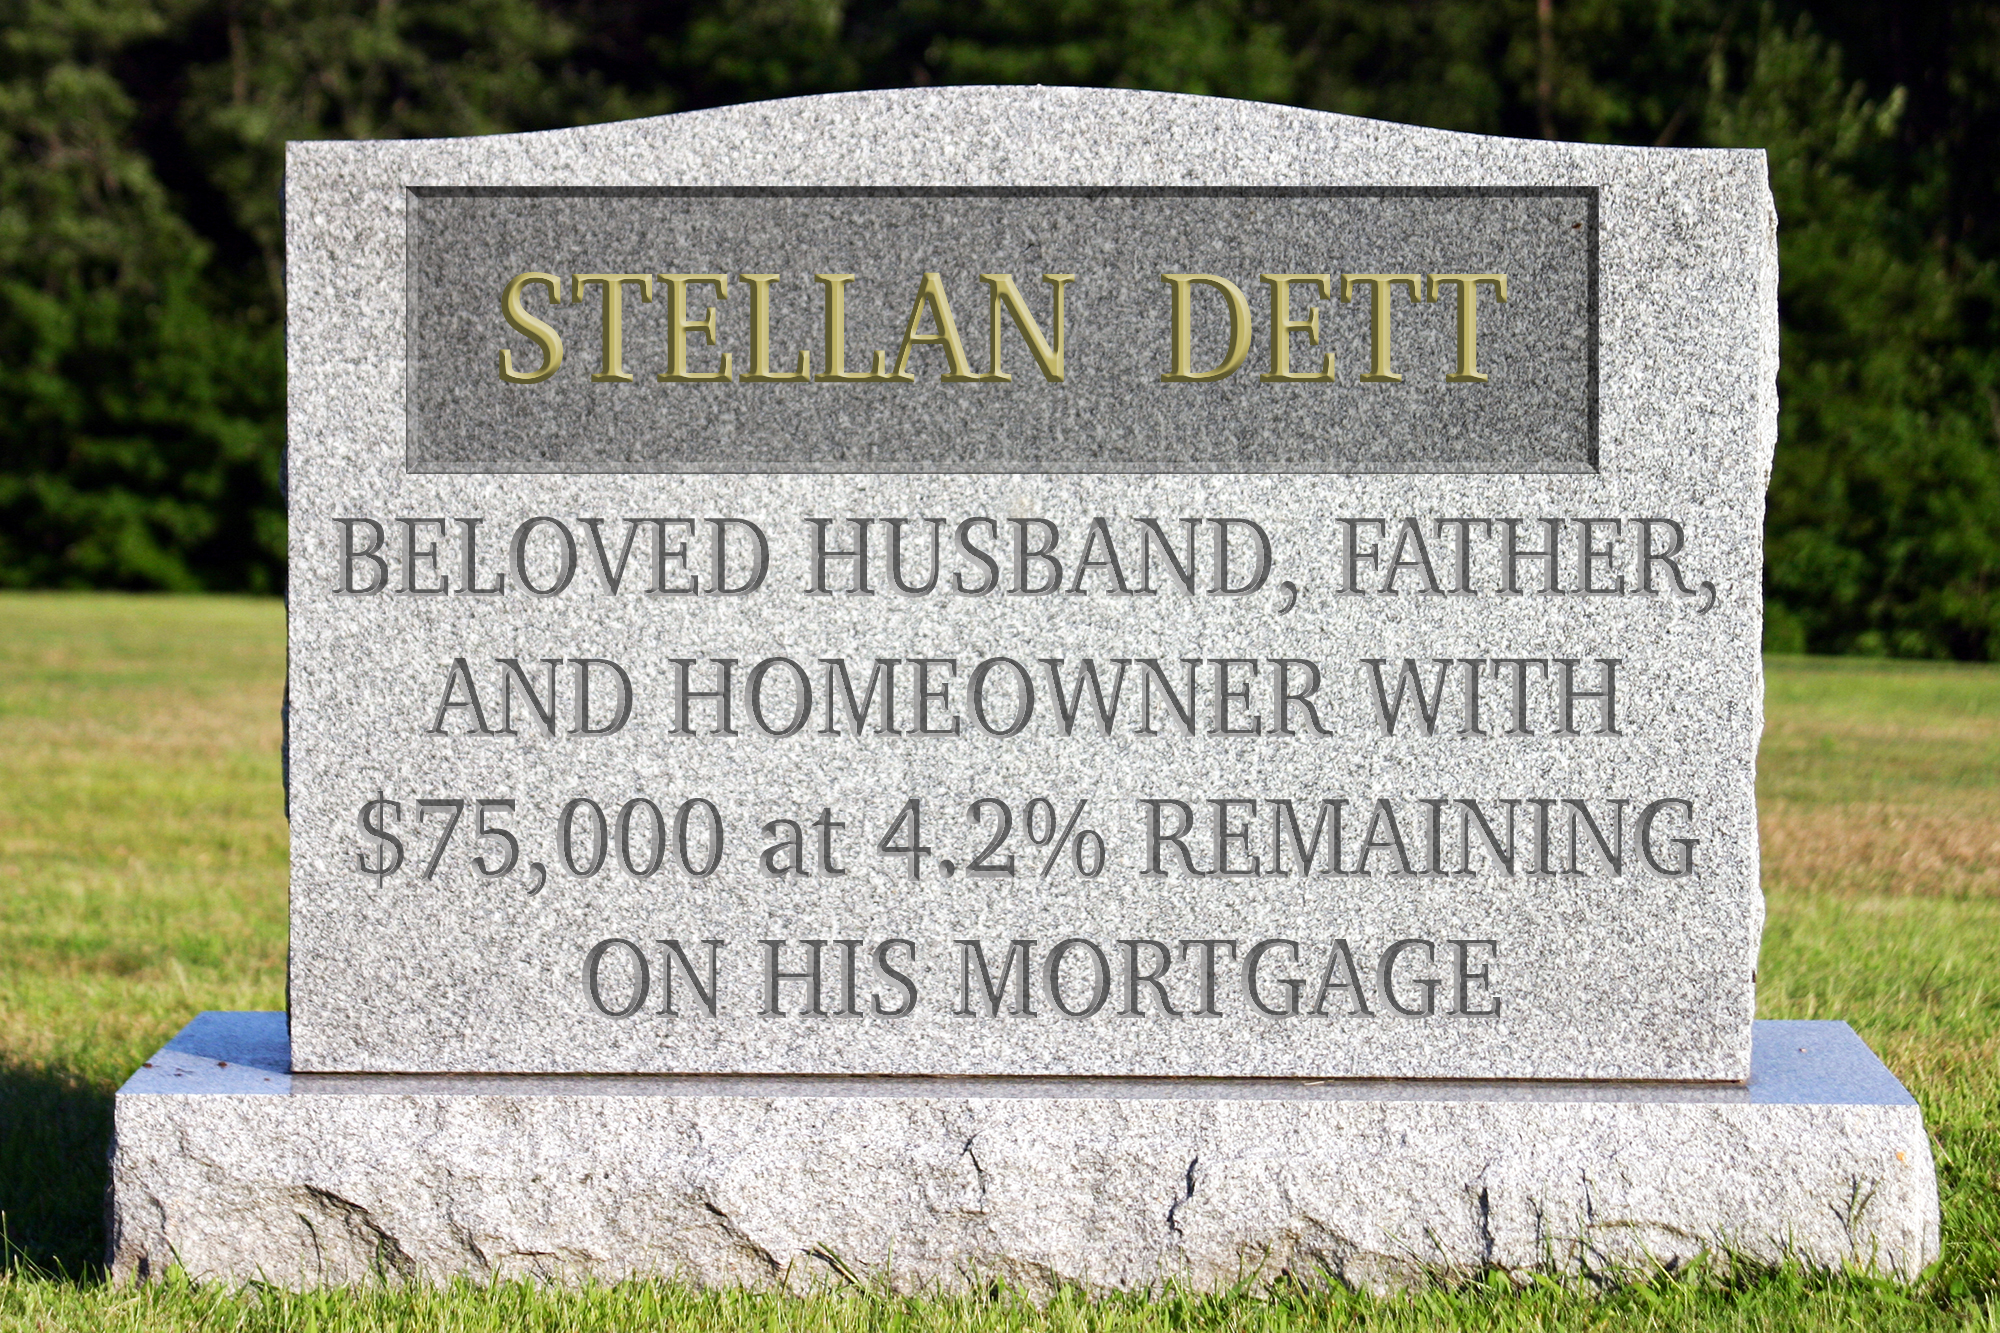 I Inherited a Mortgage. What Can I Do?